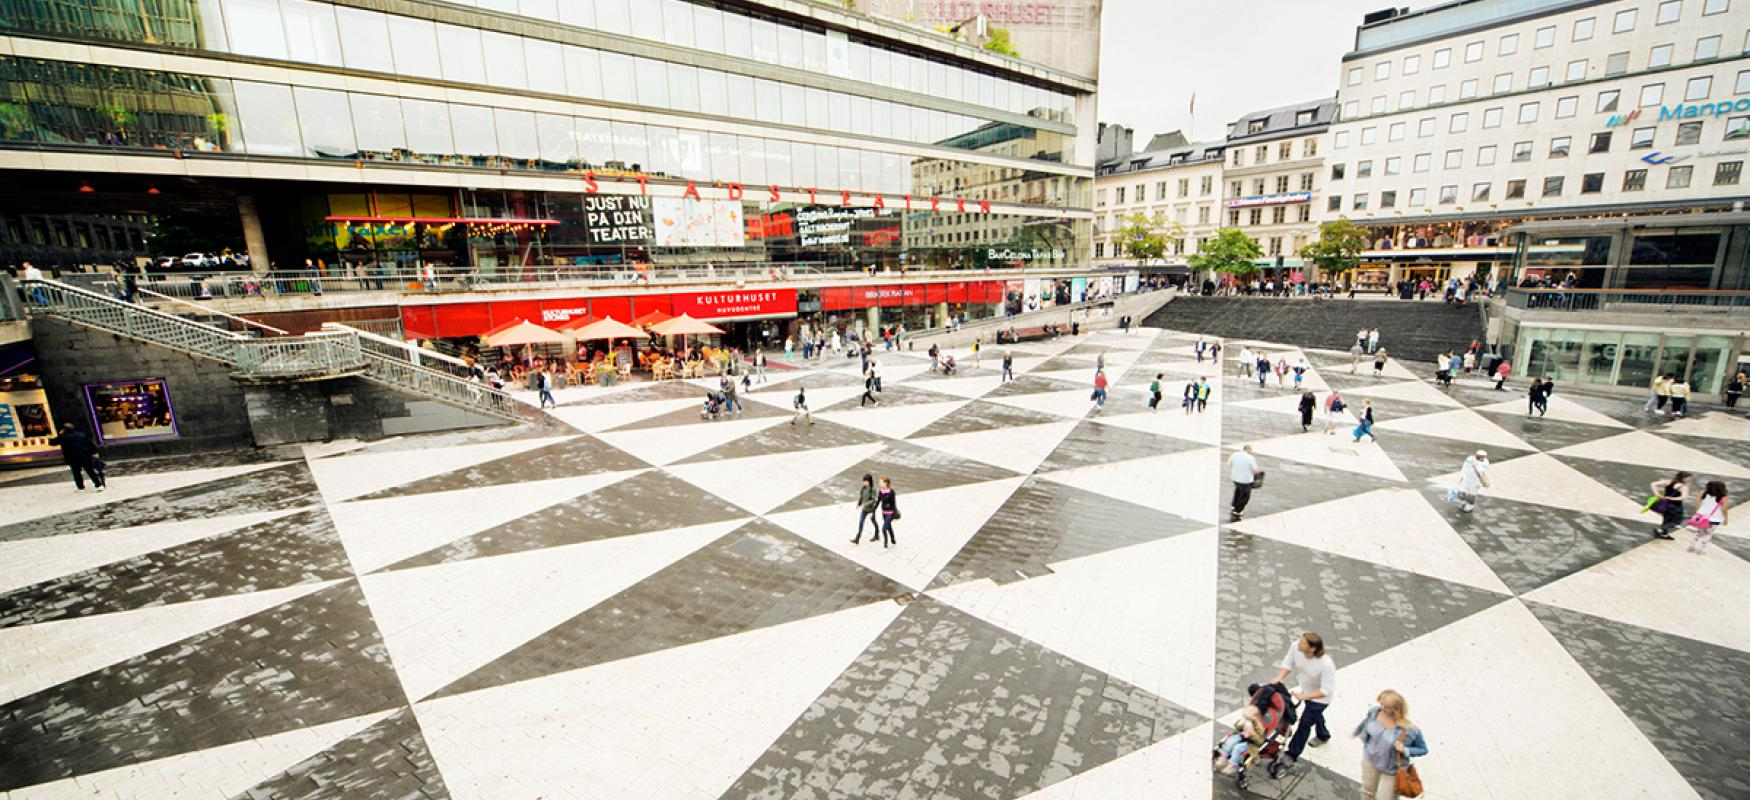 Wide angle photo of Sergels Torg in Stockholm.